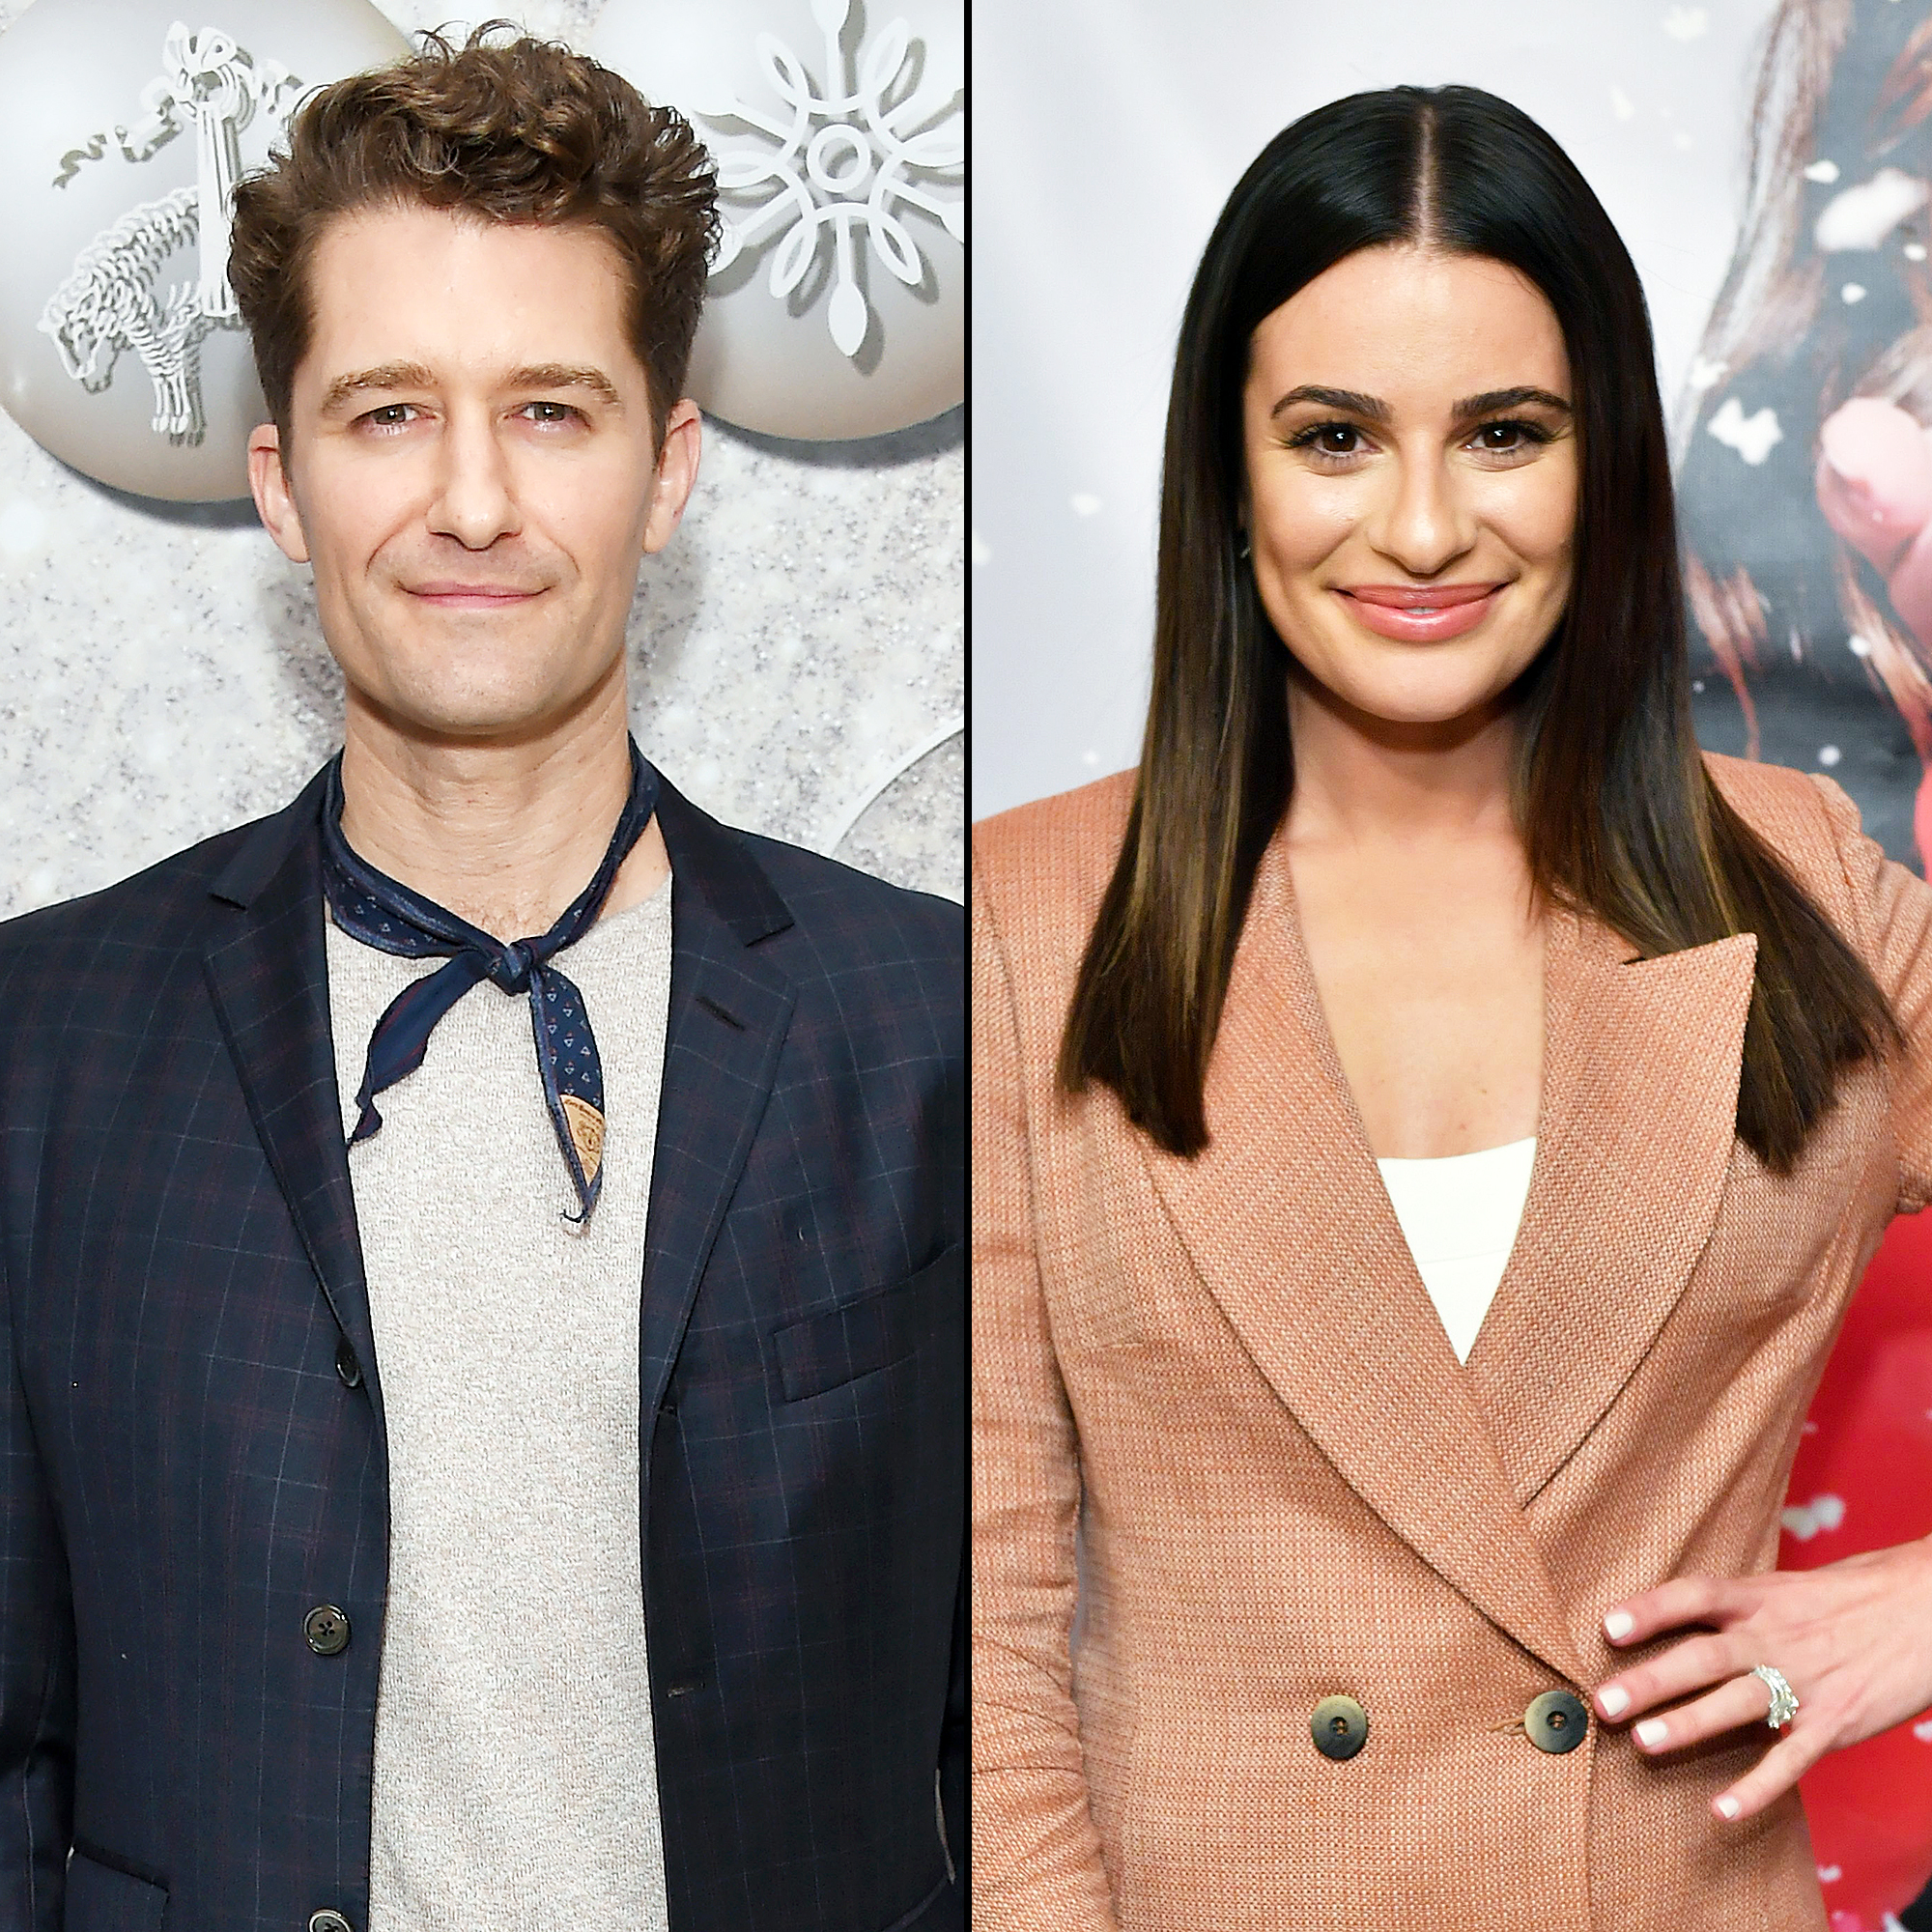 Matthew Morrison Weighs in on Ex Lea Michele Behavior on the Glee Set